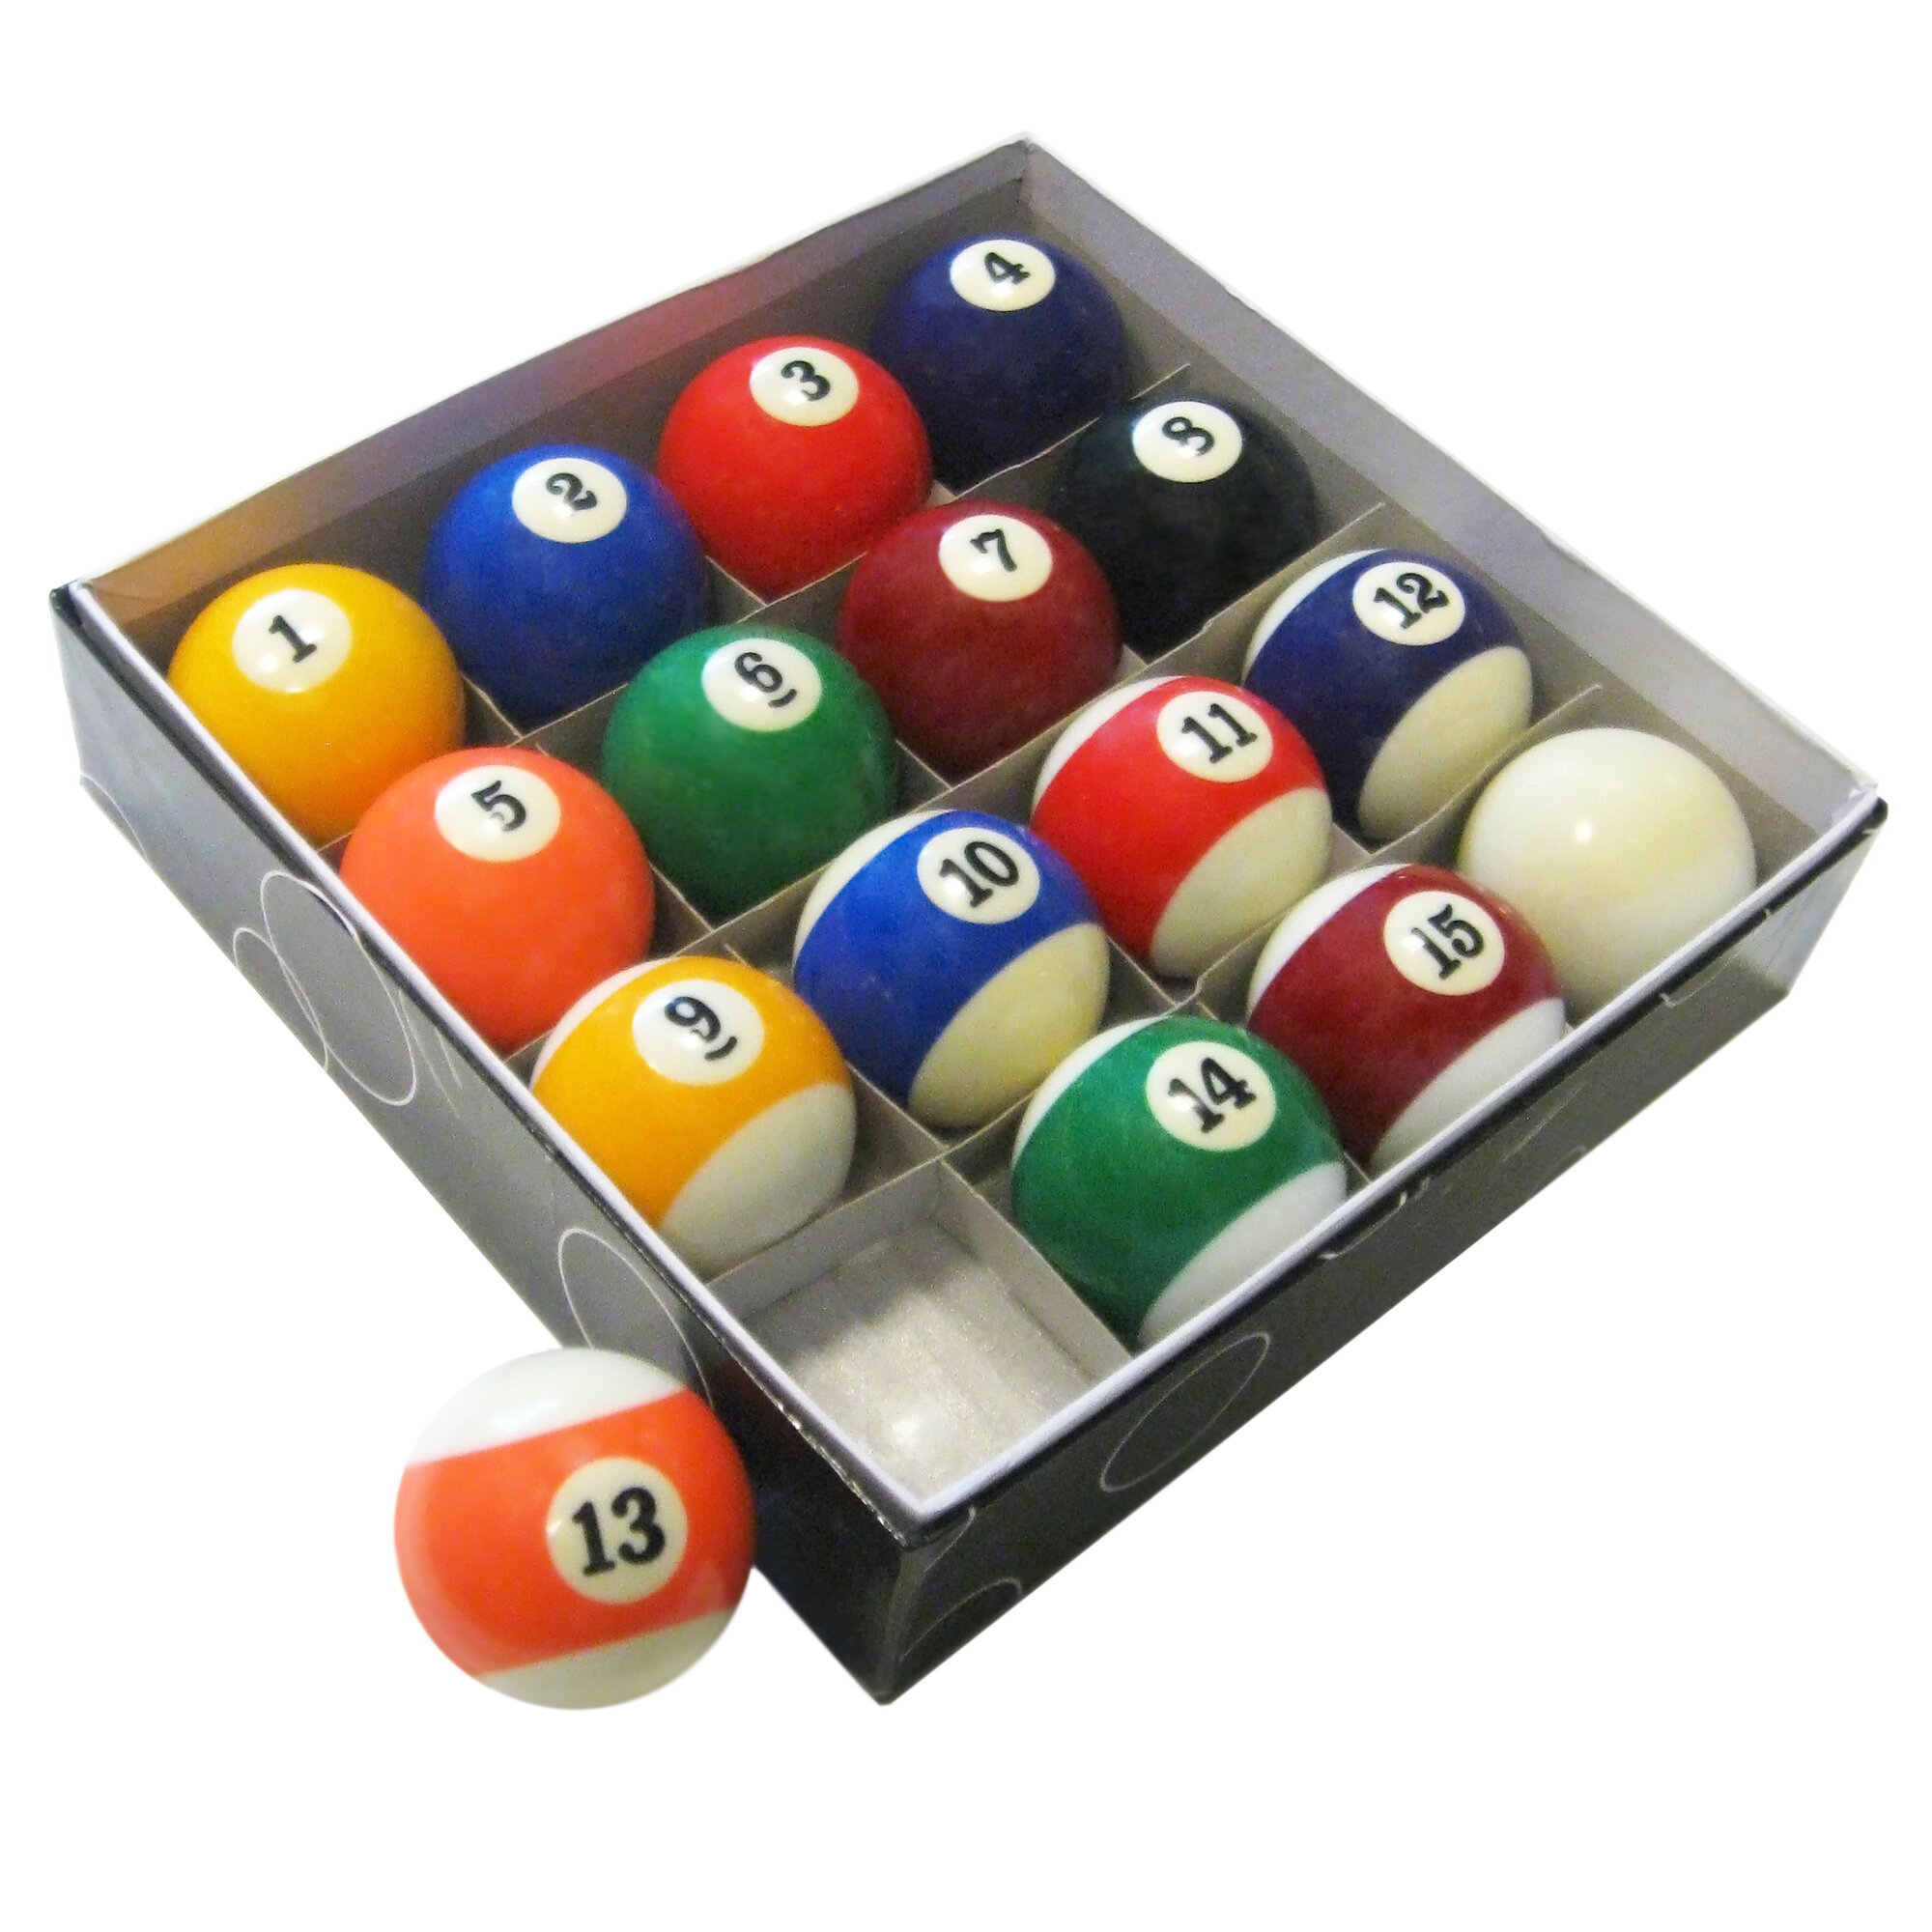 Ordinaire Hathaway Games Pool Table Regulation Billiard Ball Set U0026 Reviews | Wayfair